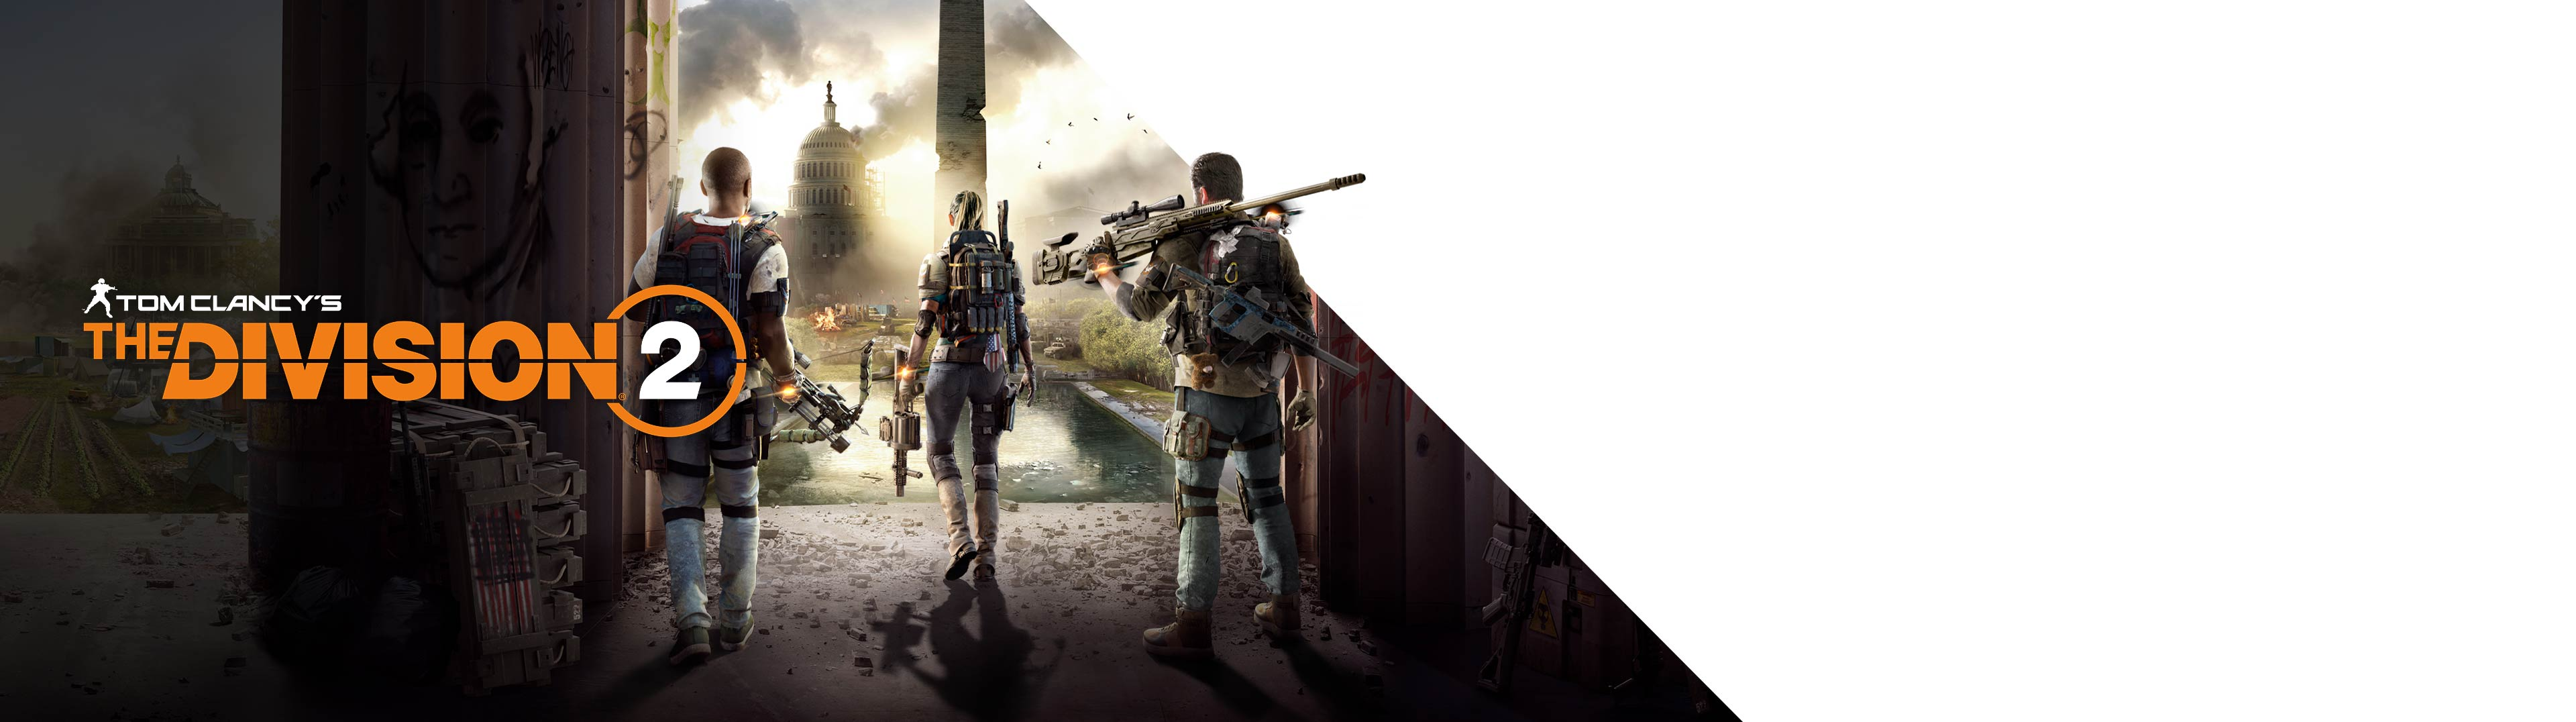 CALLING ALL AGENTS! UP TO 67% OFF THE DIVISION 2